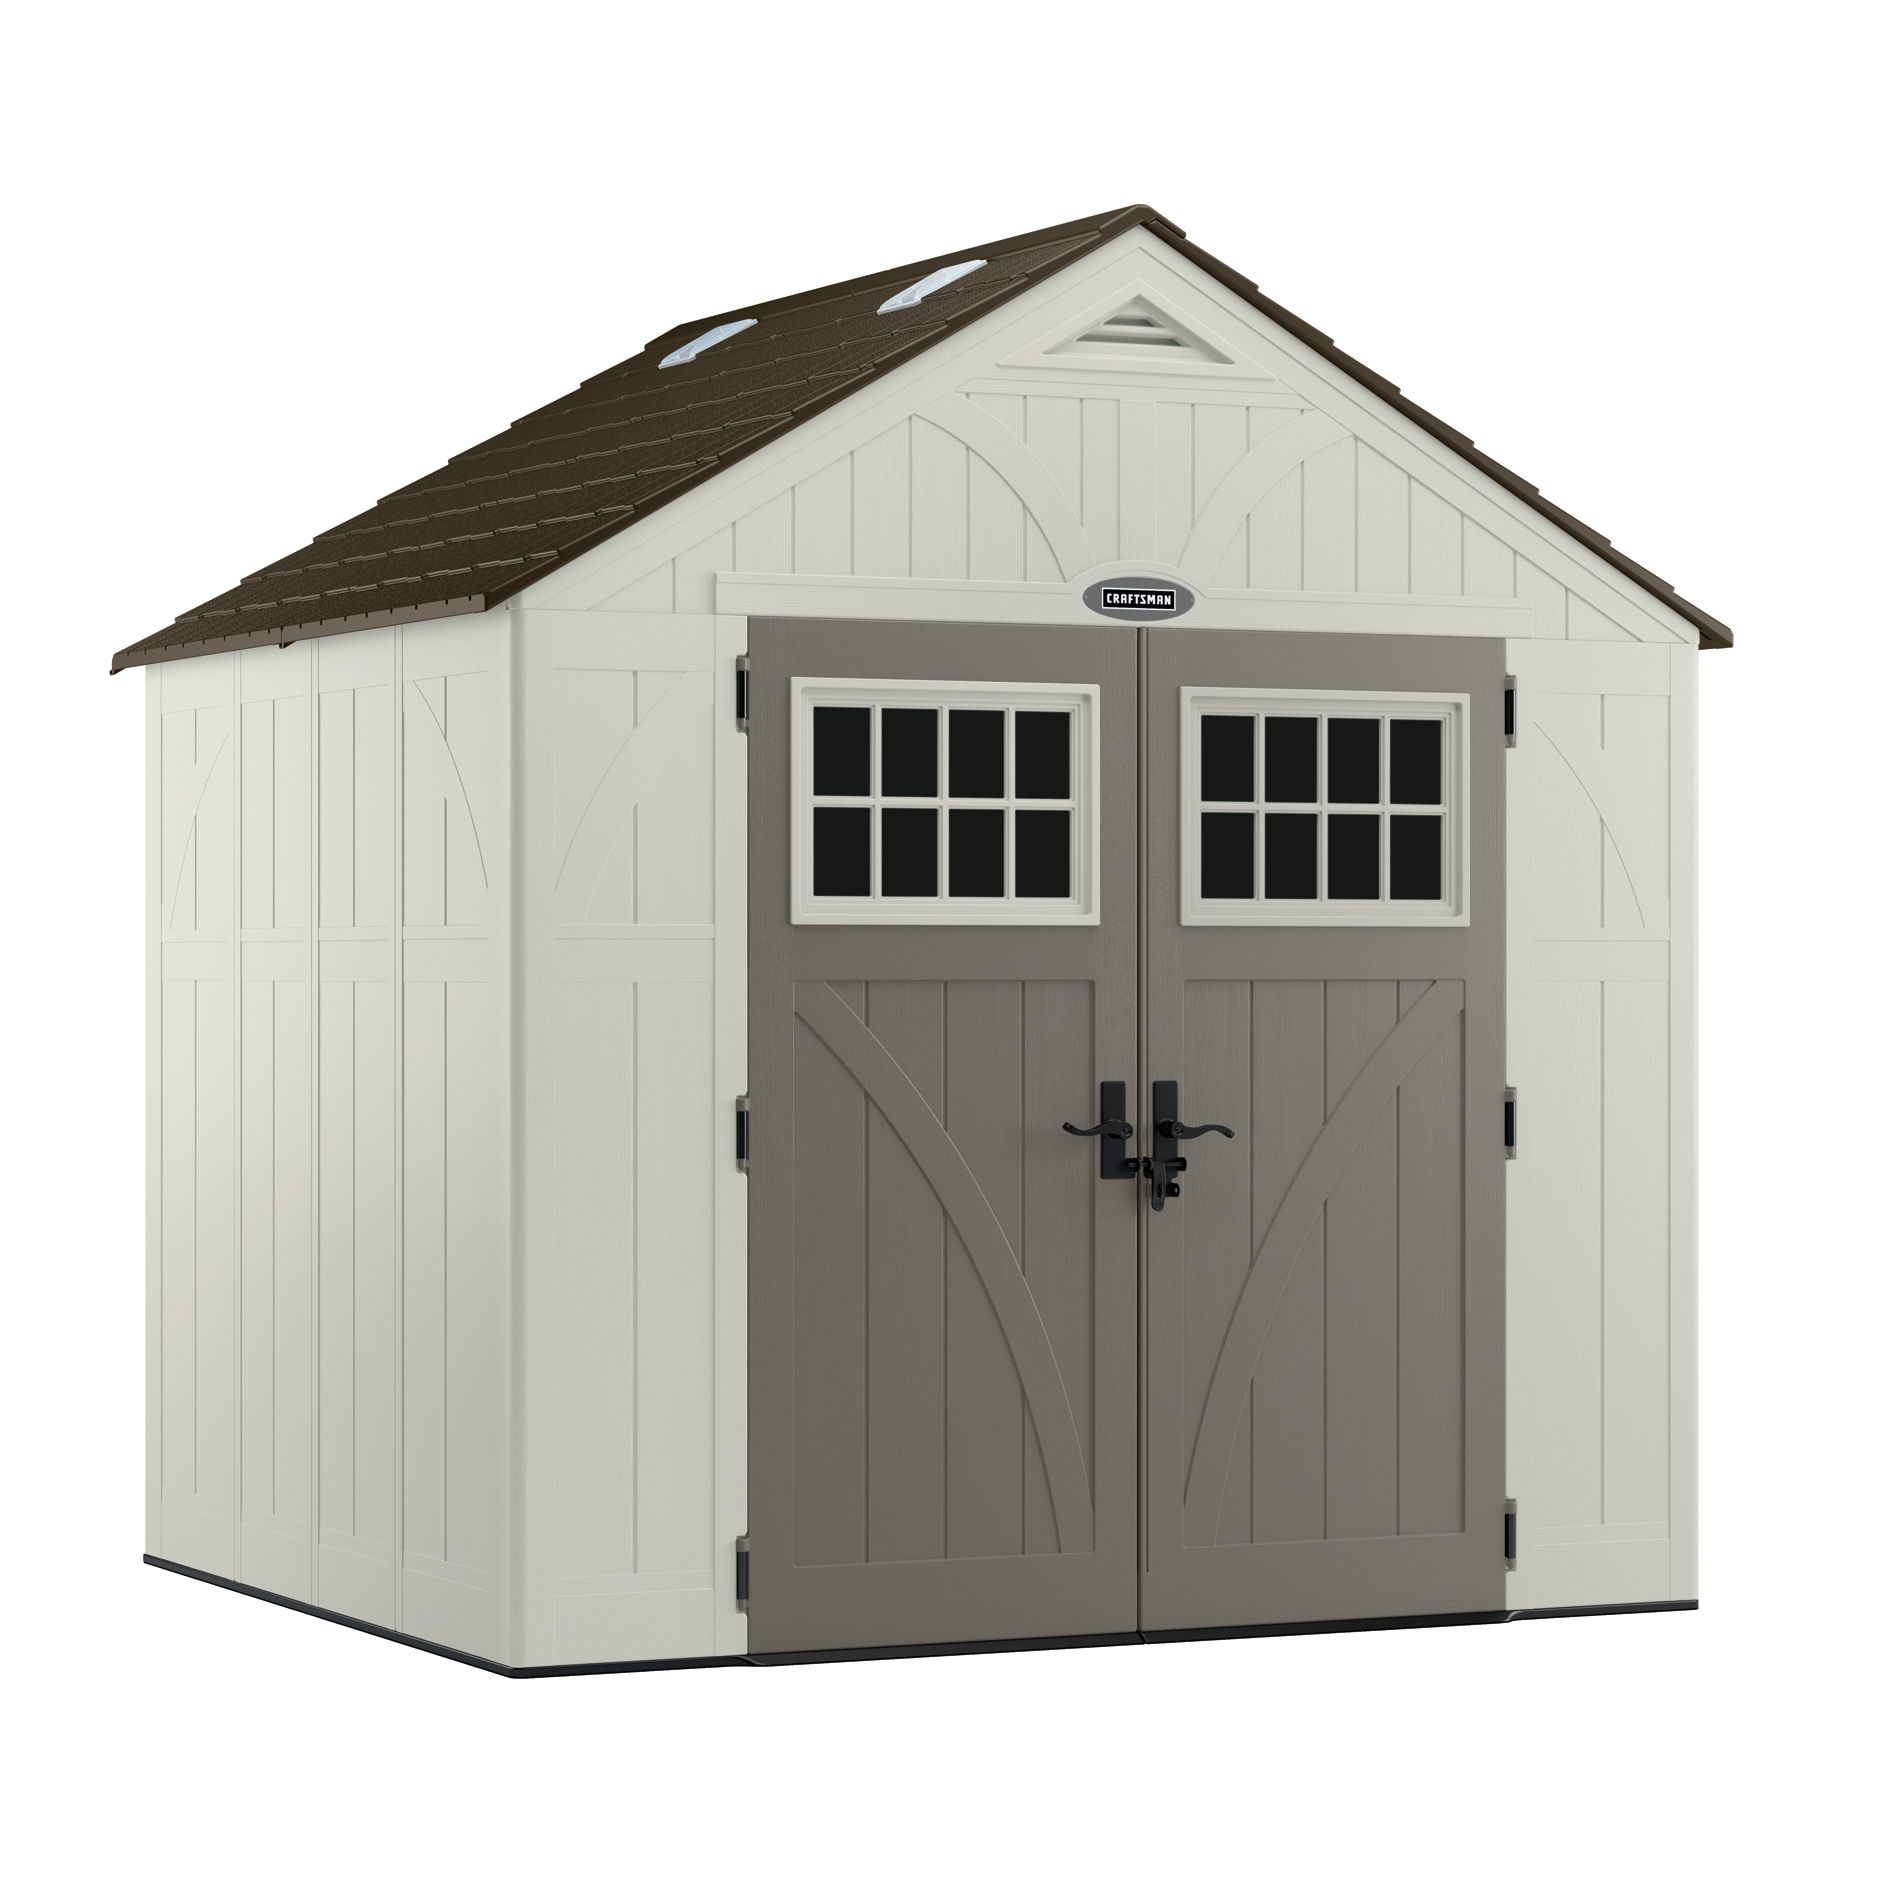 outdoor living today 9 ft x 9 ft penthouse cedar garden shed